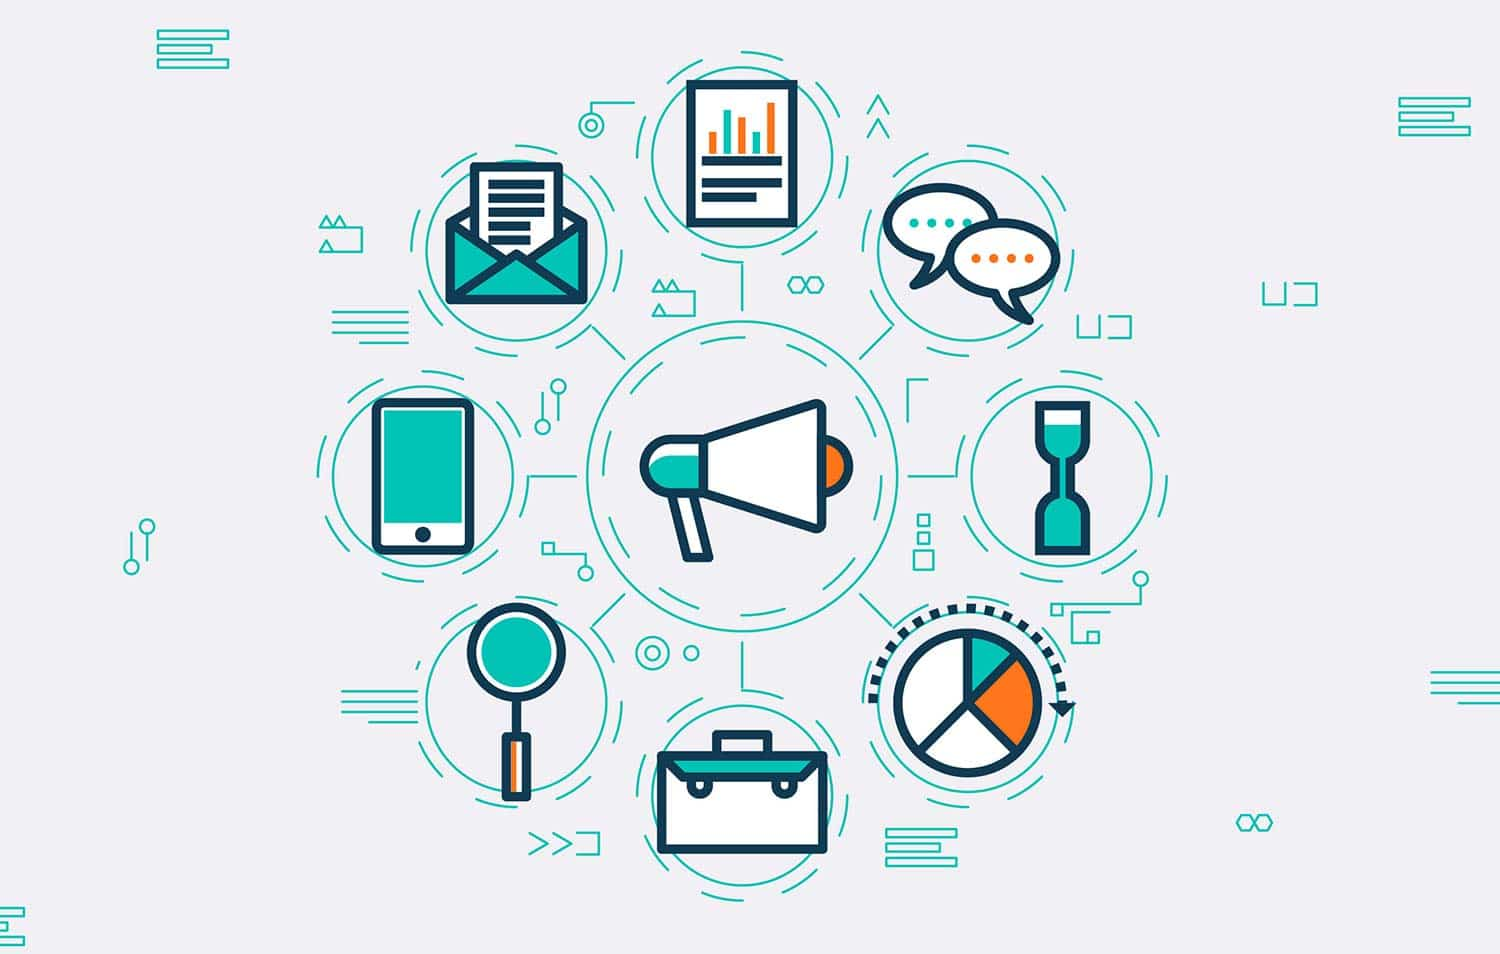 How today marketing has evolved with technological advancements